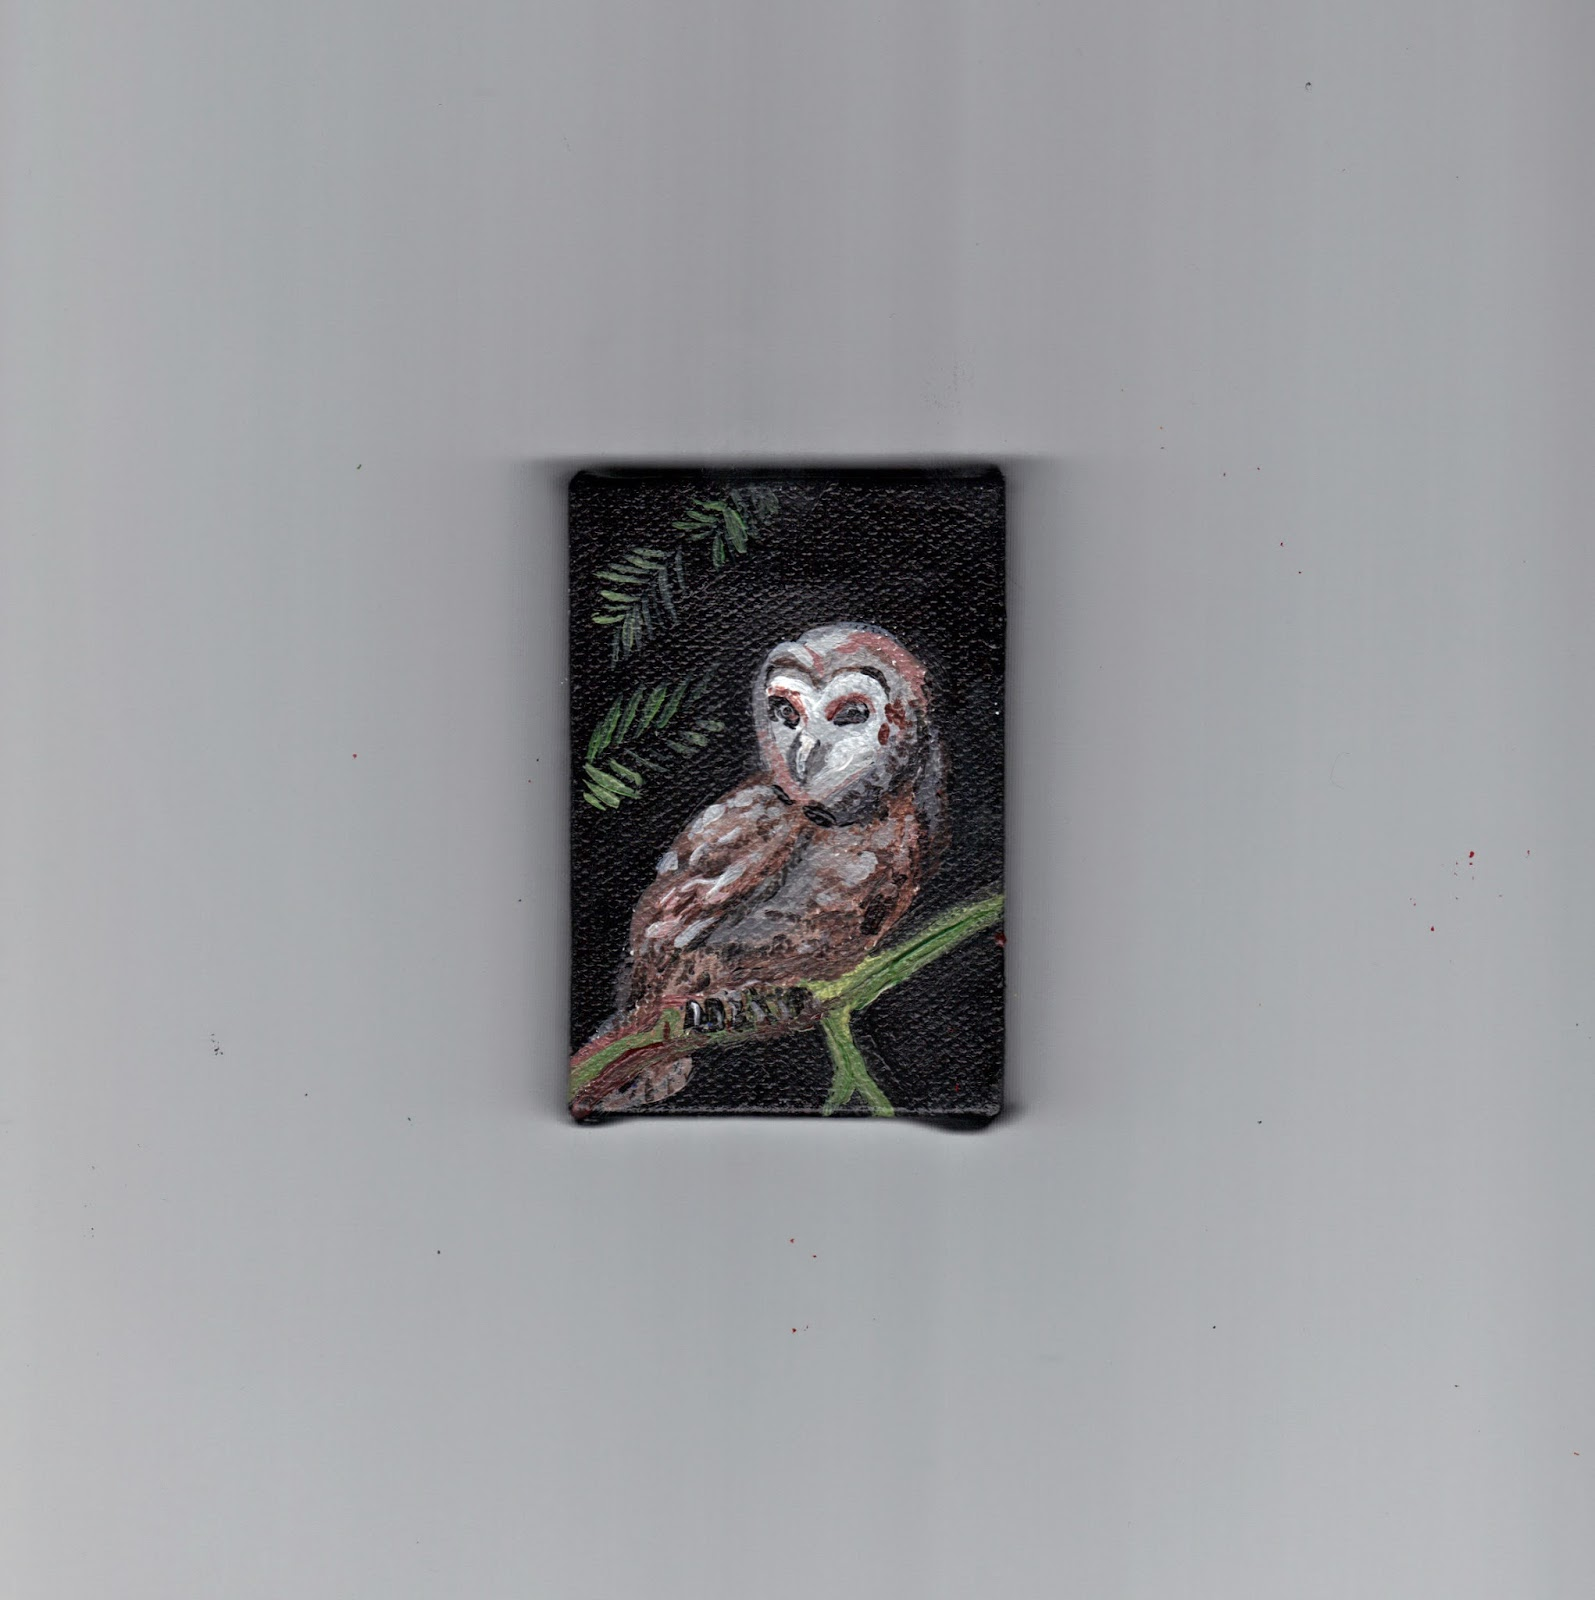 https://www.etsy.com/listing/186370813/spooky-owl-original-miniature-painting?ref=listing-shop-header-0